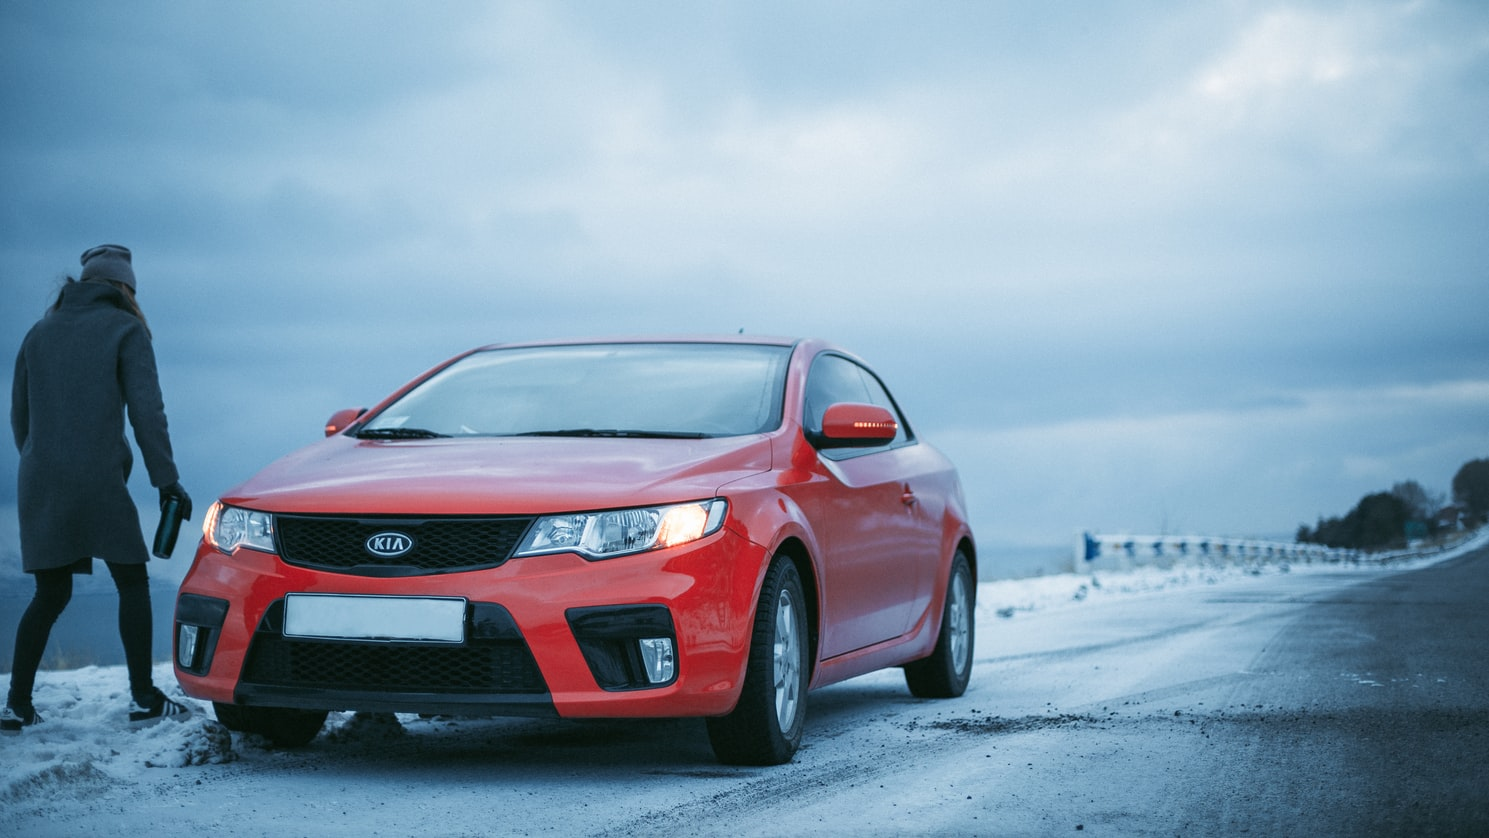 Red Kia parked on an icy road